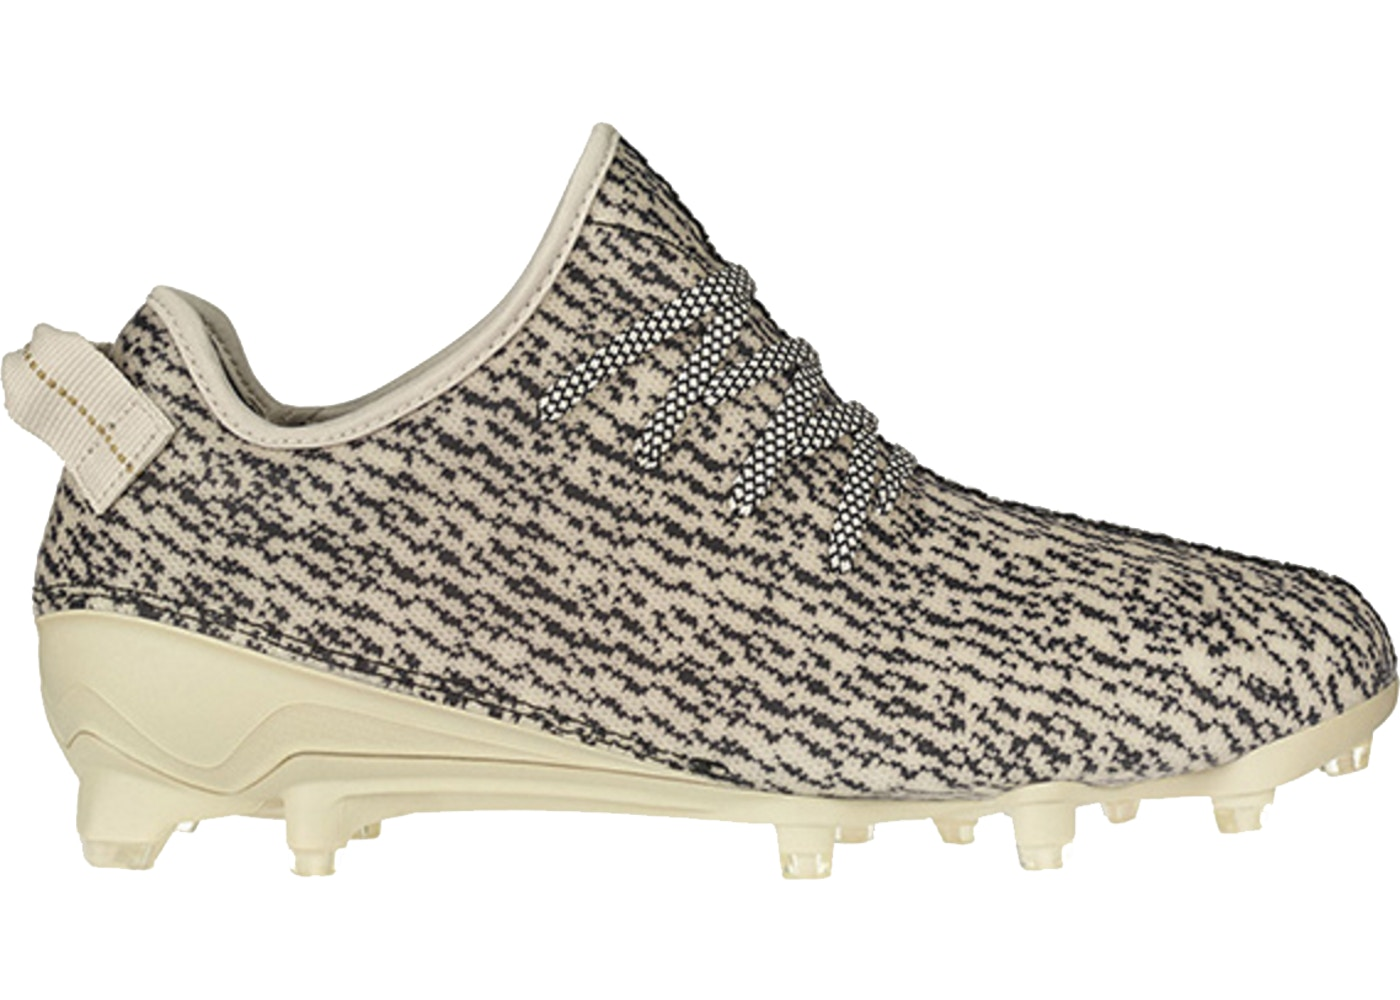 4538df3fe adidas Yeezy 350 Cleat Turtledove - B42410